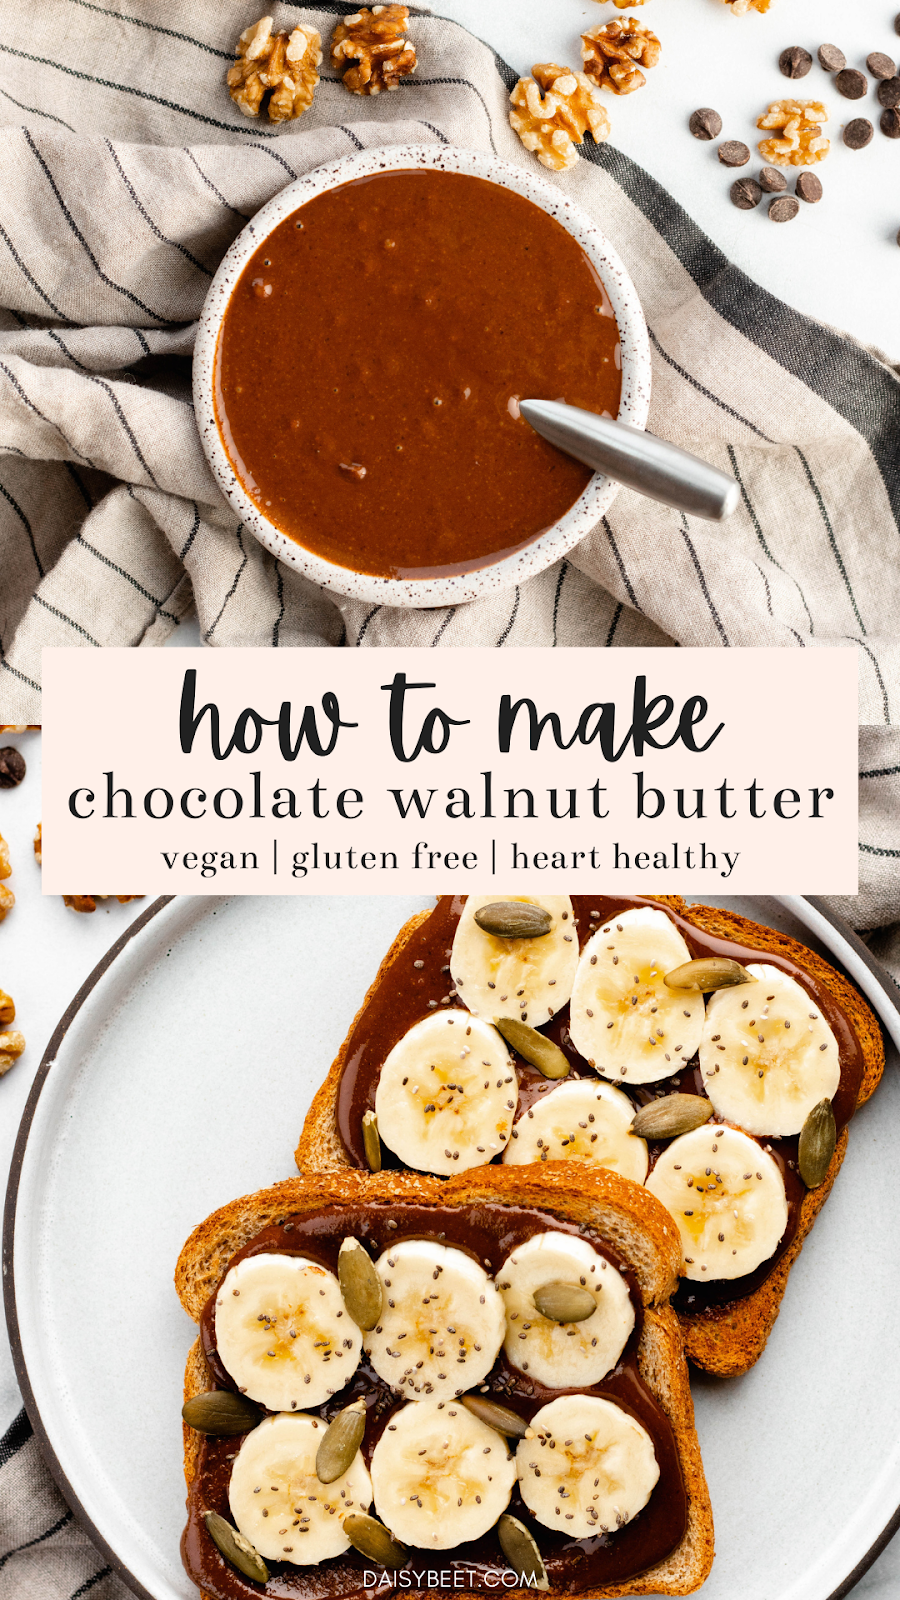 How to Make Chocolate Walnut Butter | Daisybeet, MS, RD